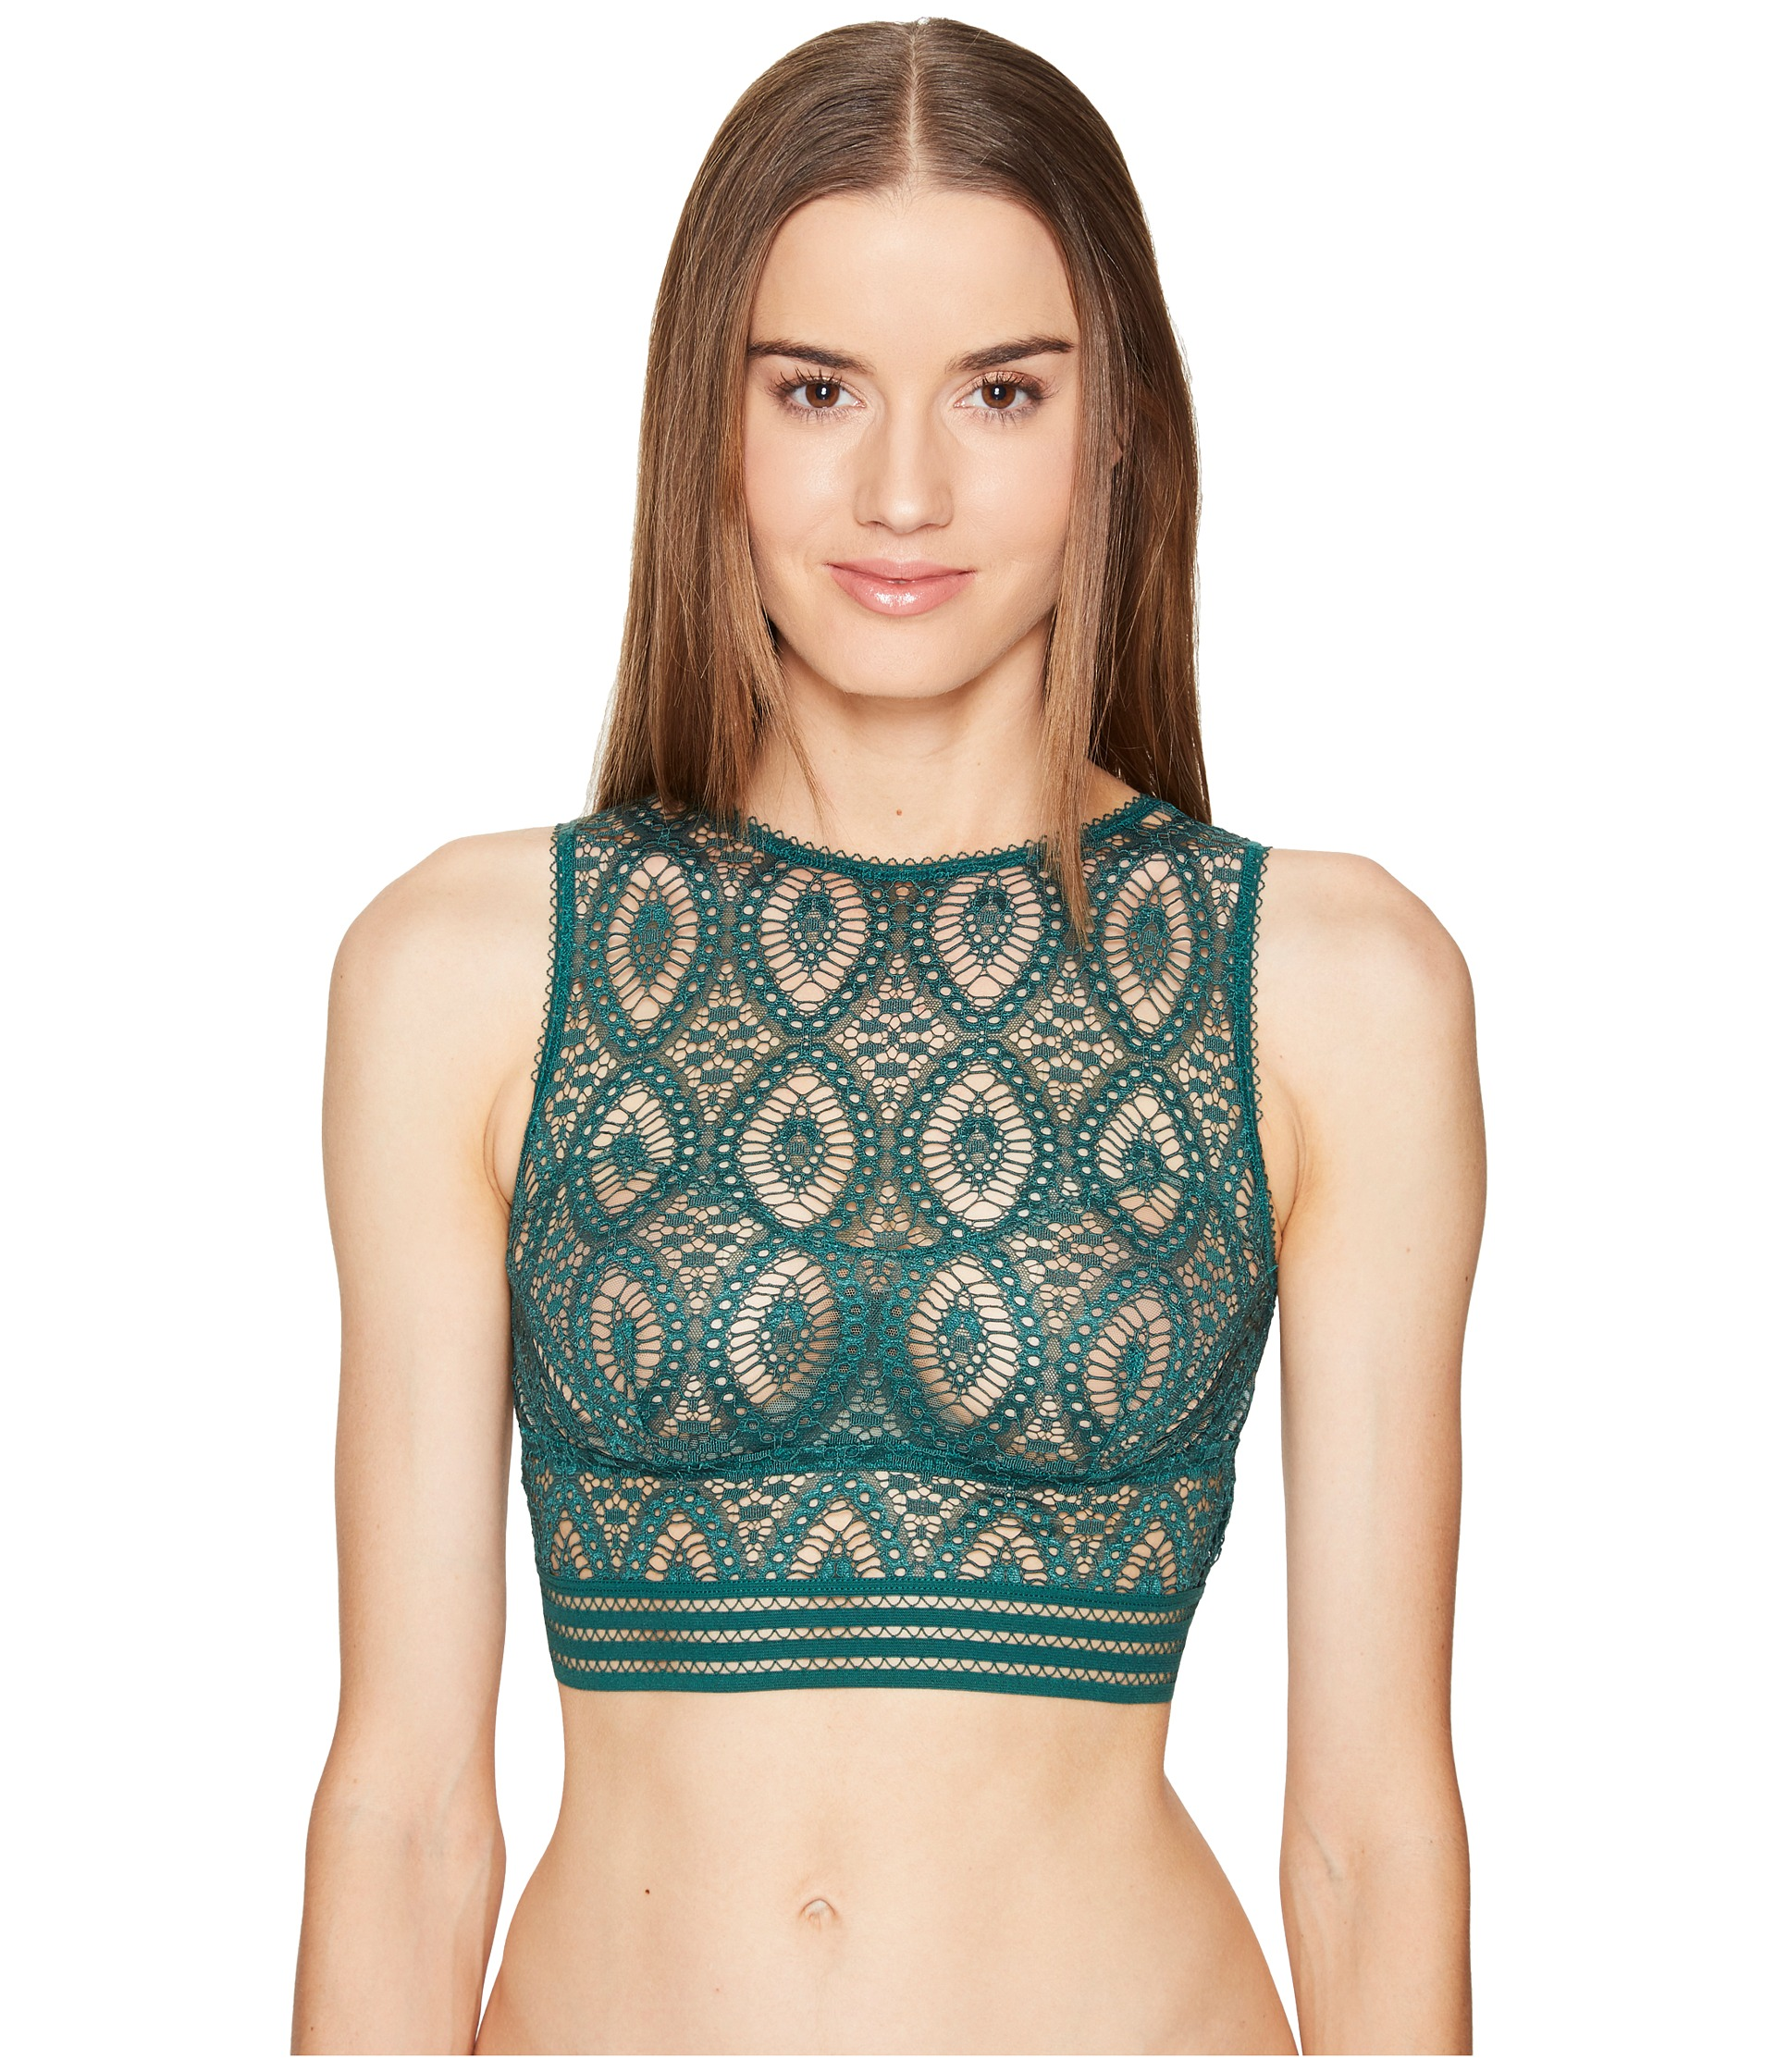 ELSE Baroque Cropped Tank Underwire Bra Top